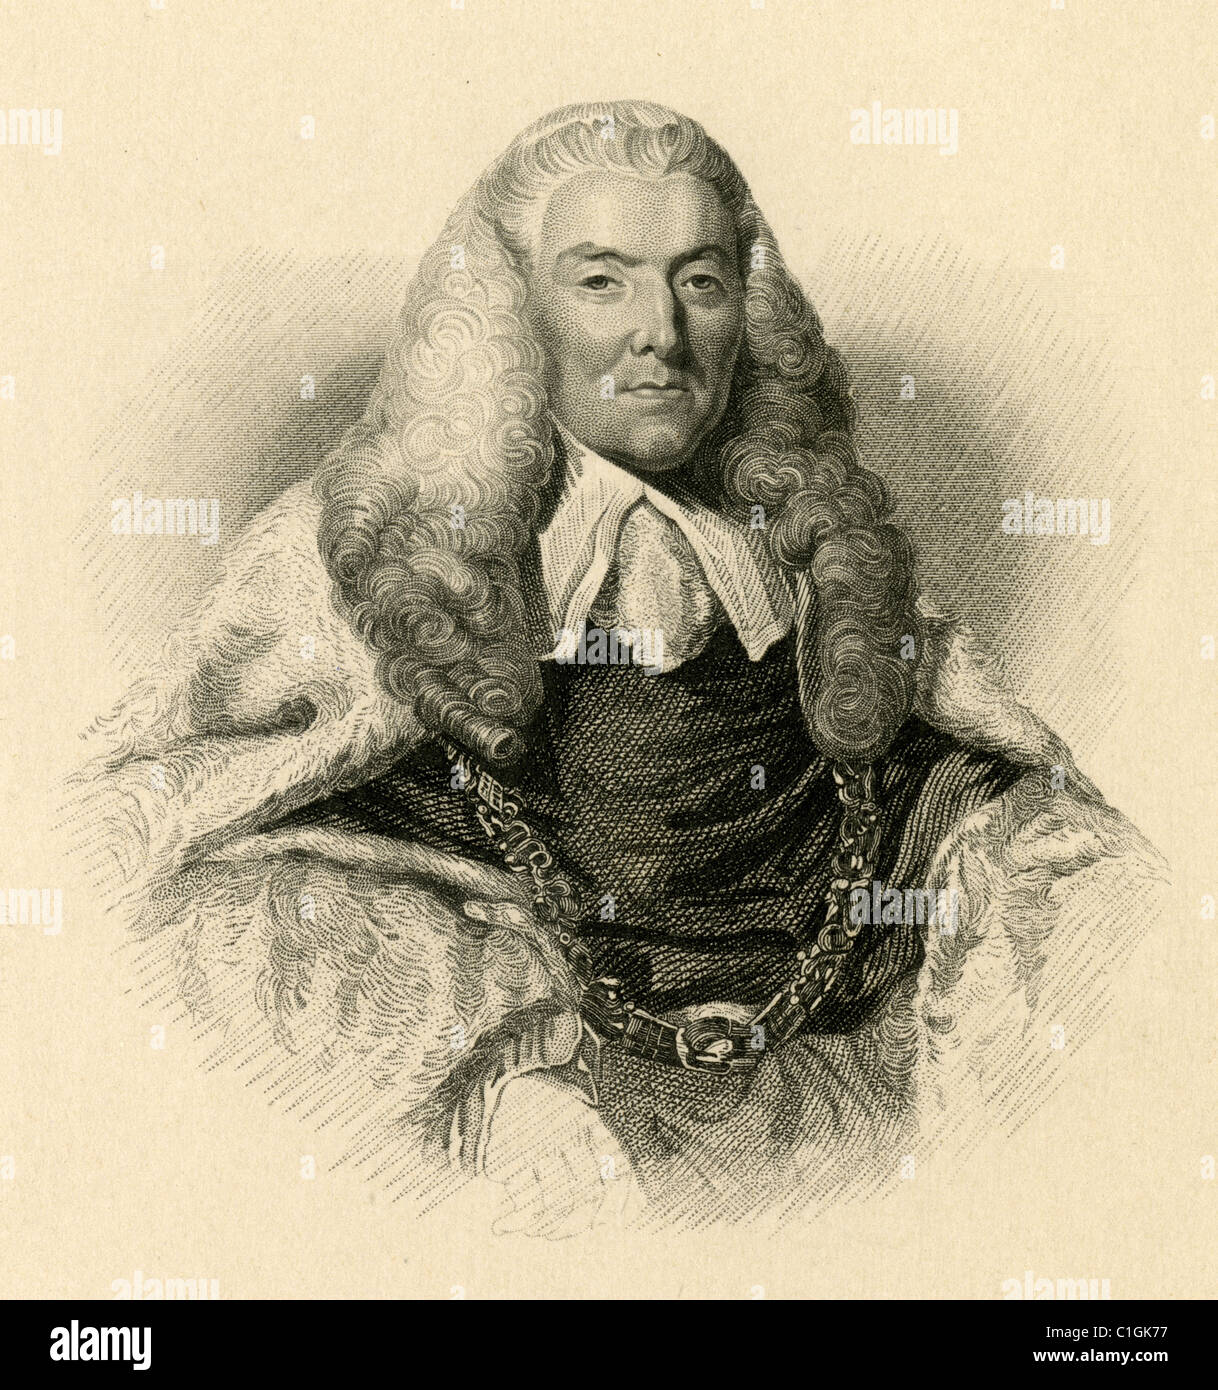 William Murray, 1st Earl of Mansfield - Stock Image